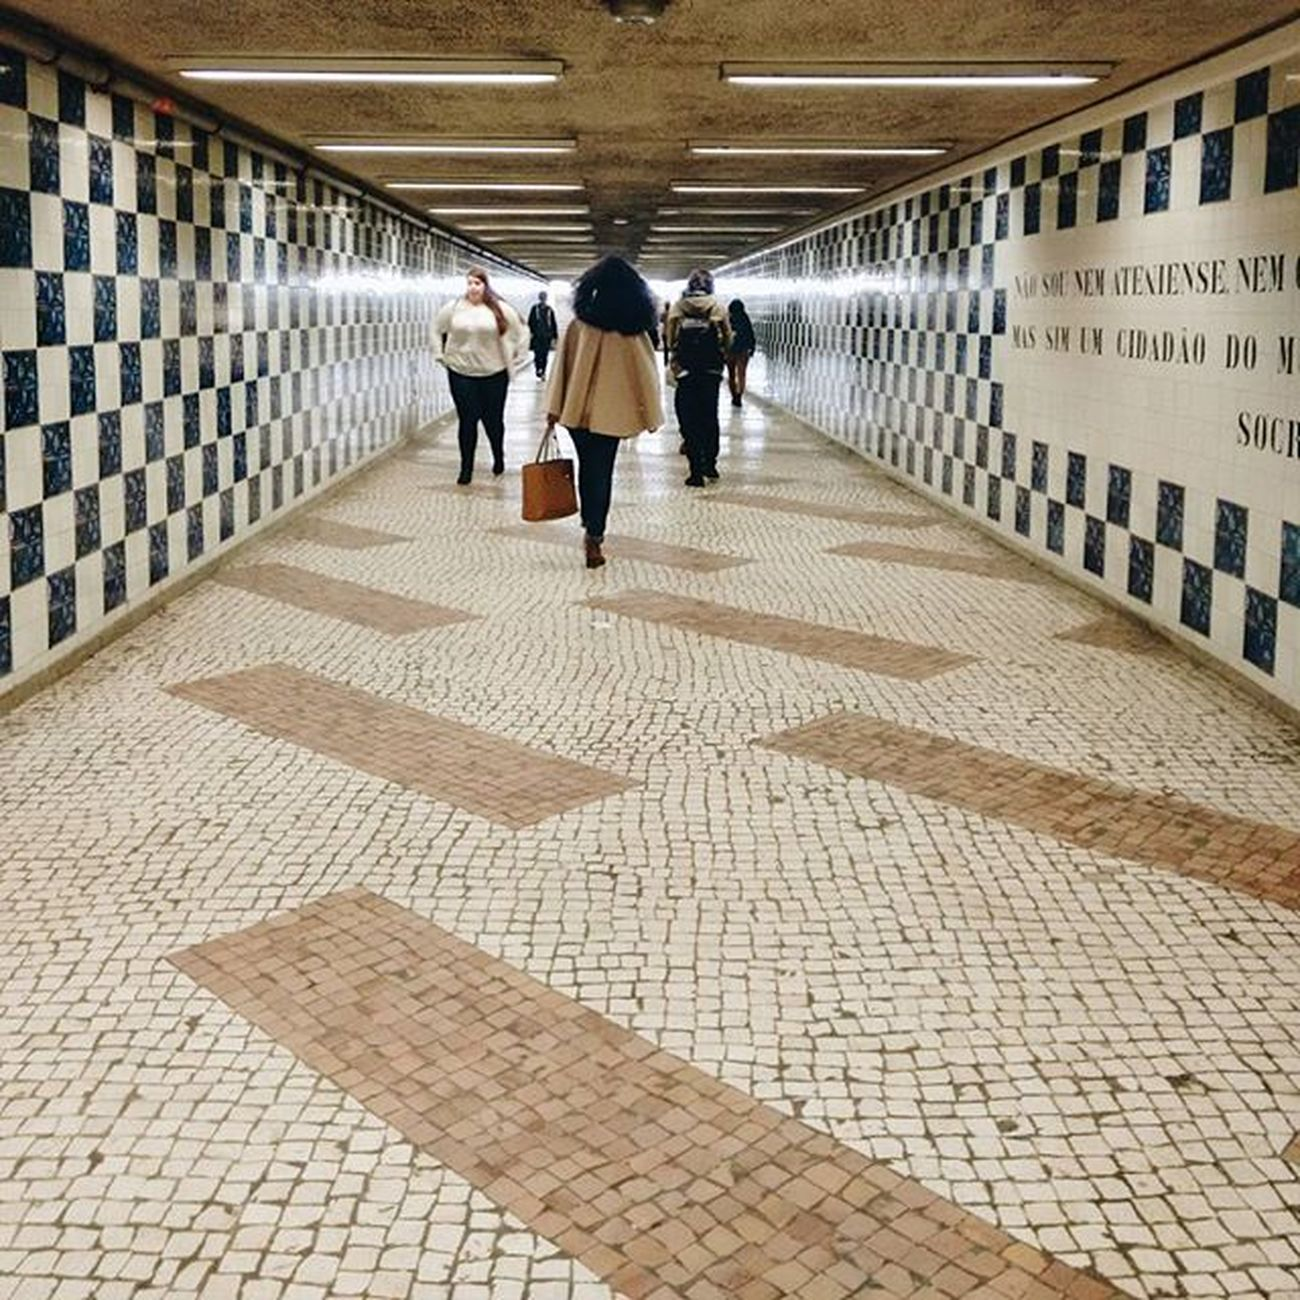 Ao fundo do túnel. Worldcaptures Exploretocreate Espalhafotos Rsa_architecture Rsa_light Travelingram Yoursquarehere Igerslisboa Igers_lx Igersportugal Igers Oh_mag Oh_shot P3top Portugalcomefeitos Portugalemperspectiva Shooters_pt Sweet_inspiration Faded_portugal Huntgram Lisbon Vscogram Vscogood Brake_frames Bomregisto mobilemag nothingisordinary igersportugal expressaomelhordatuacidade buondioficial